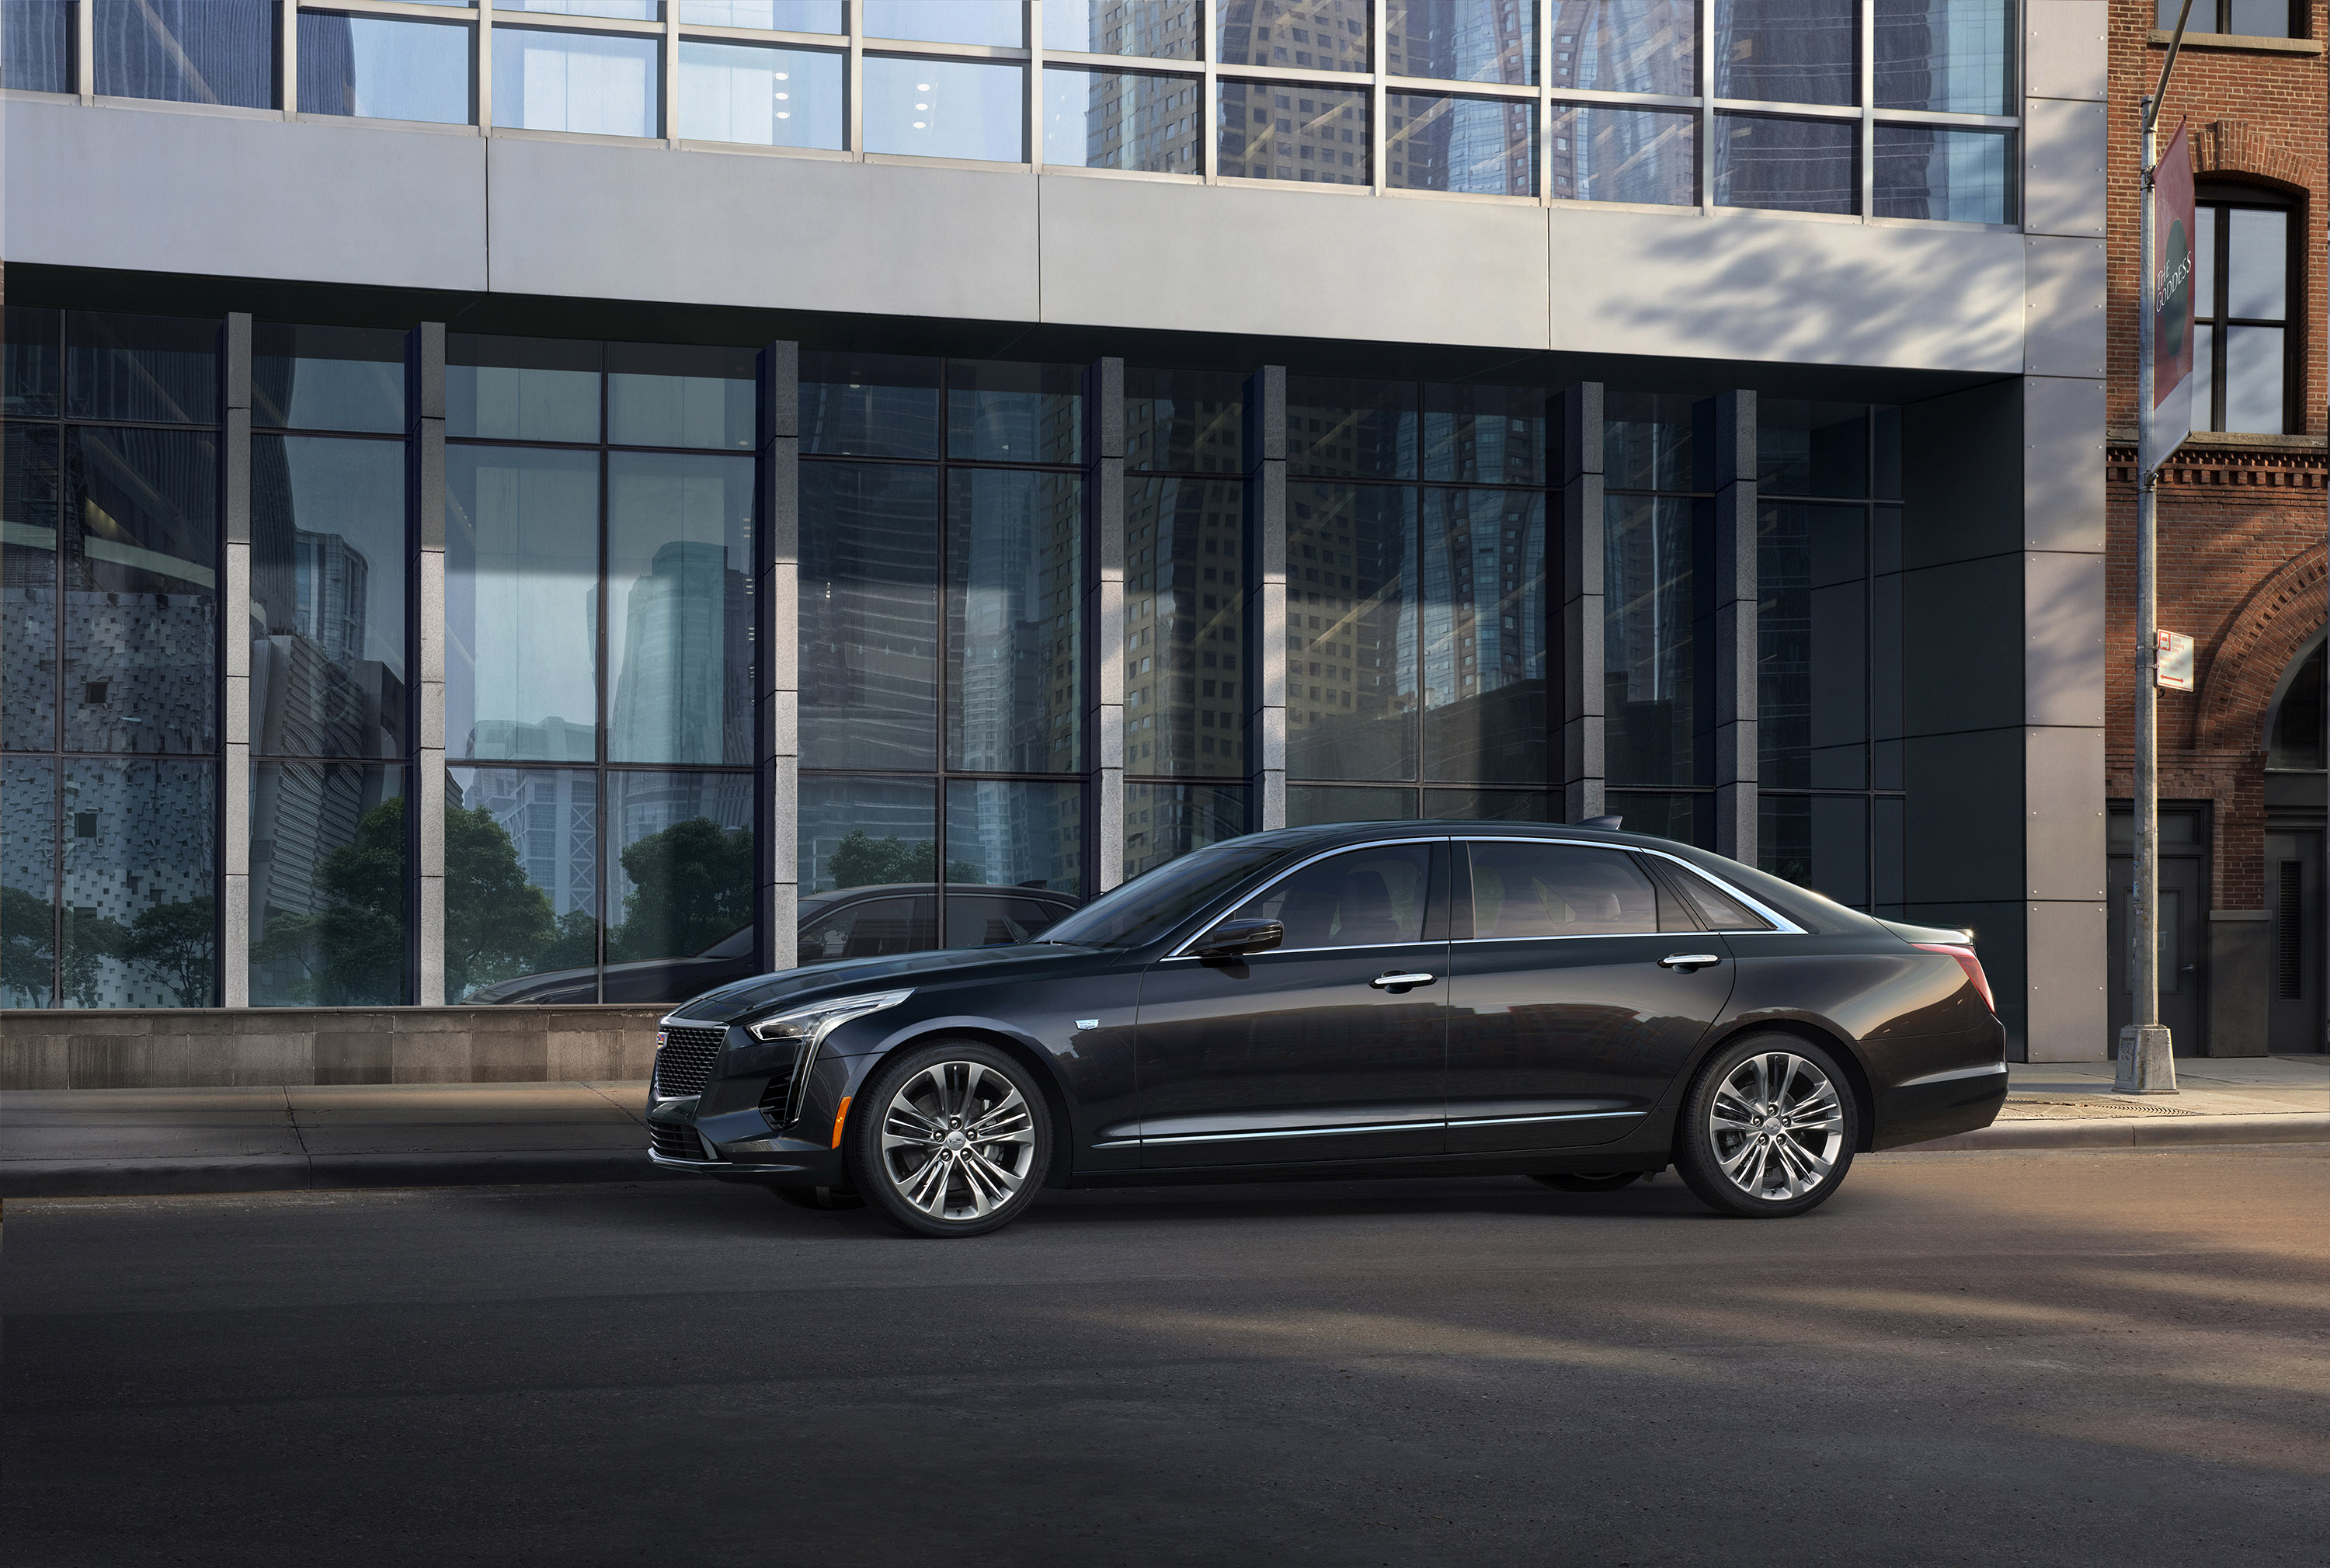 Cadillac CT6 V-Sport: not available everywhere